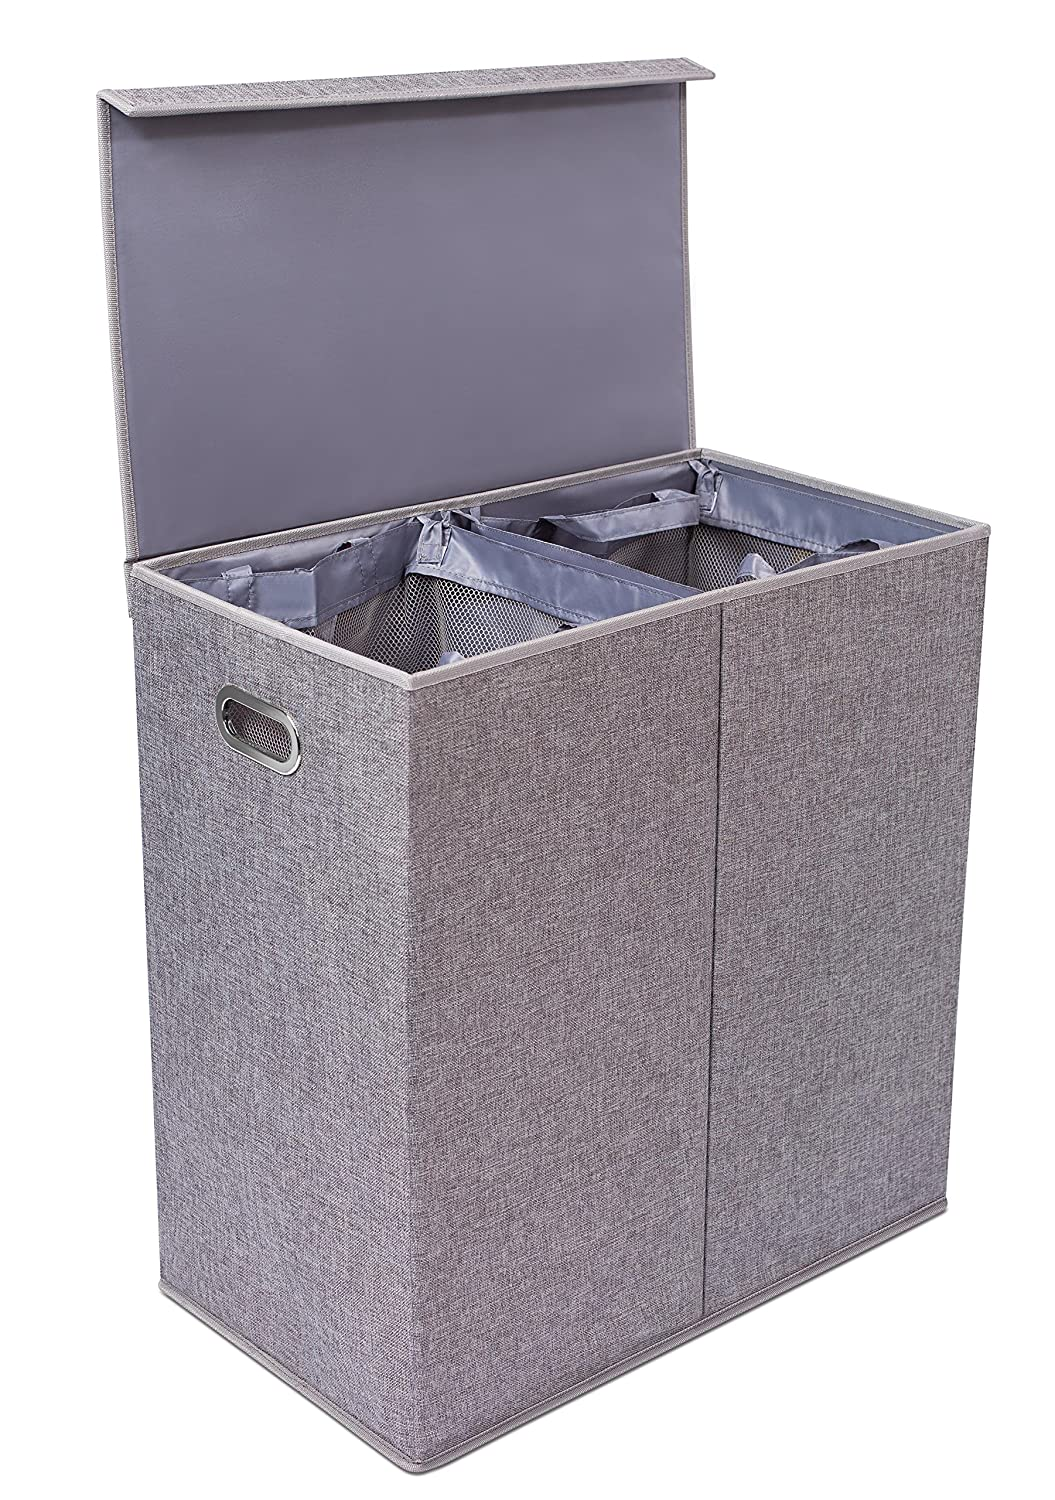 Double Laundry Hamper with Lid and Removable Liners | Linen | Easily Transport Laundry | Foldable Hamper | Cut Out Handles